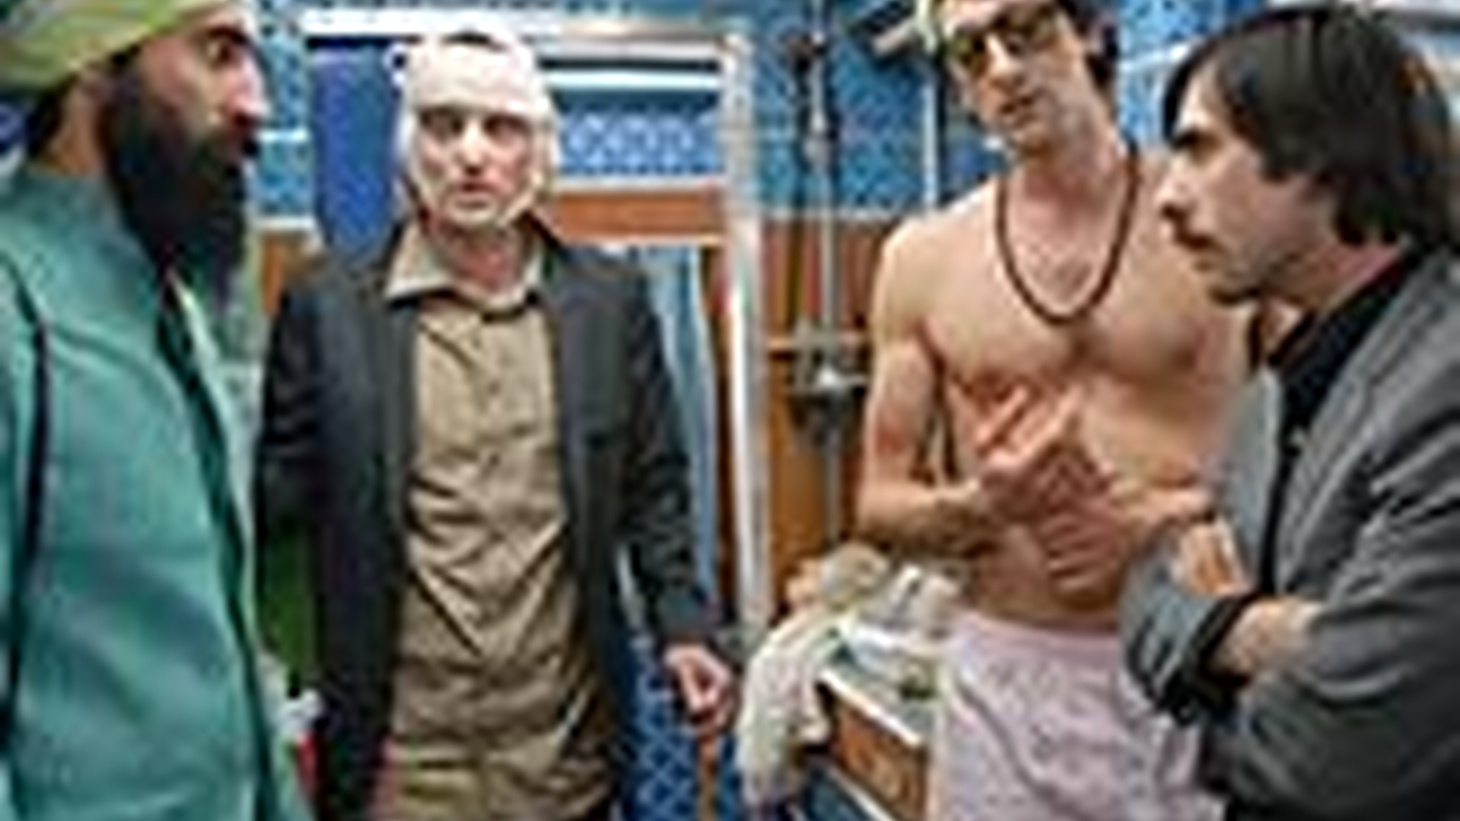 Joe Morgenstern, film critic for the Wall Street Journal, reviews The Kingdom and The Darjeeling Limited.